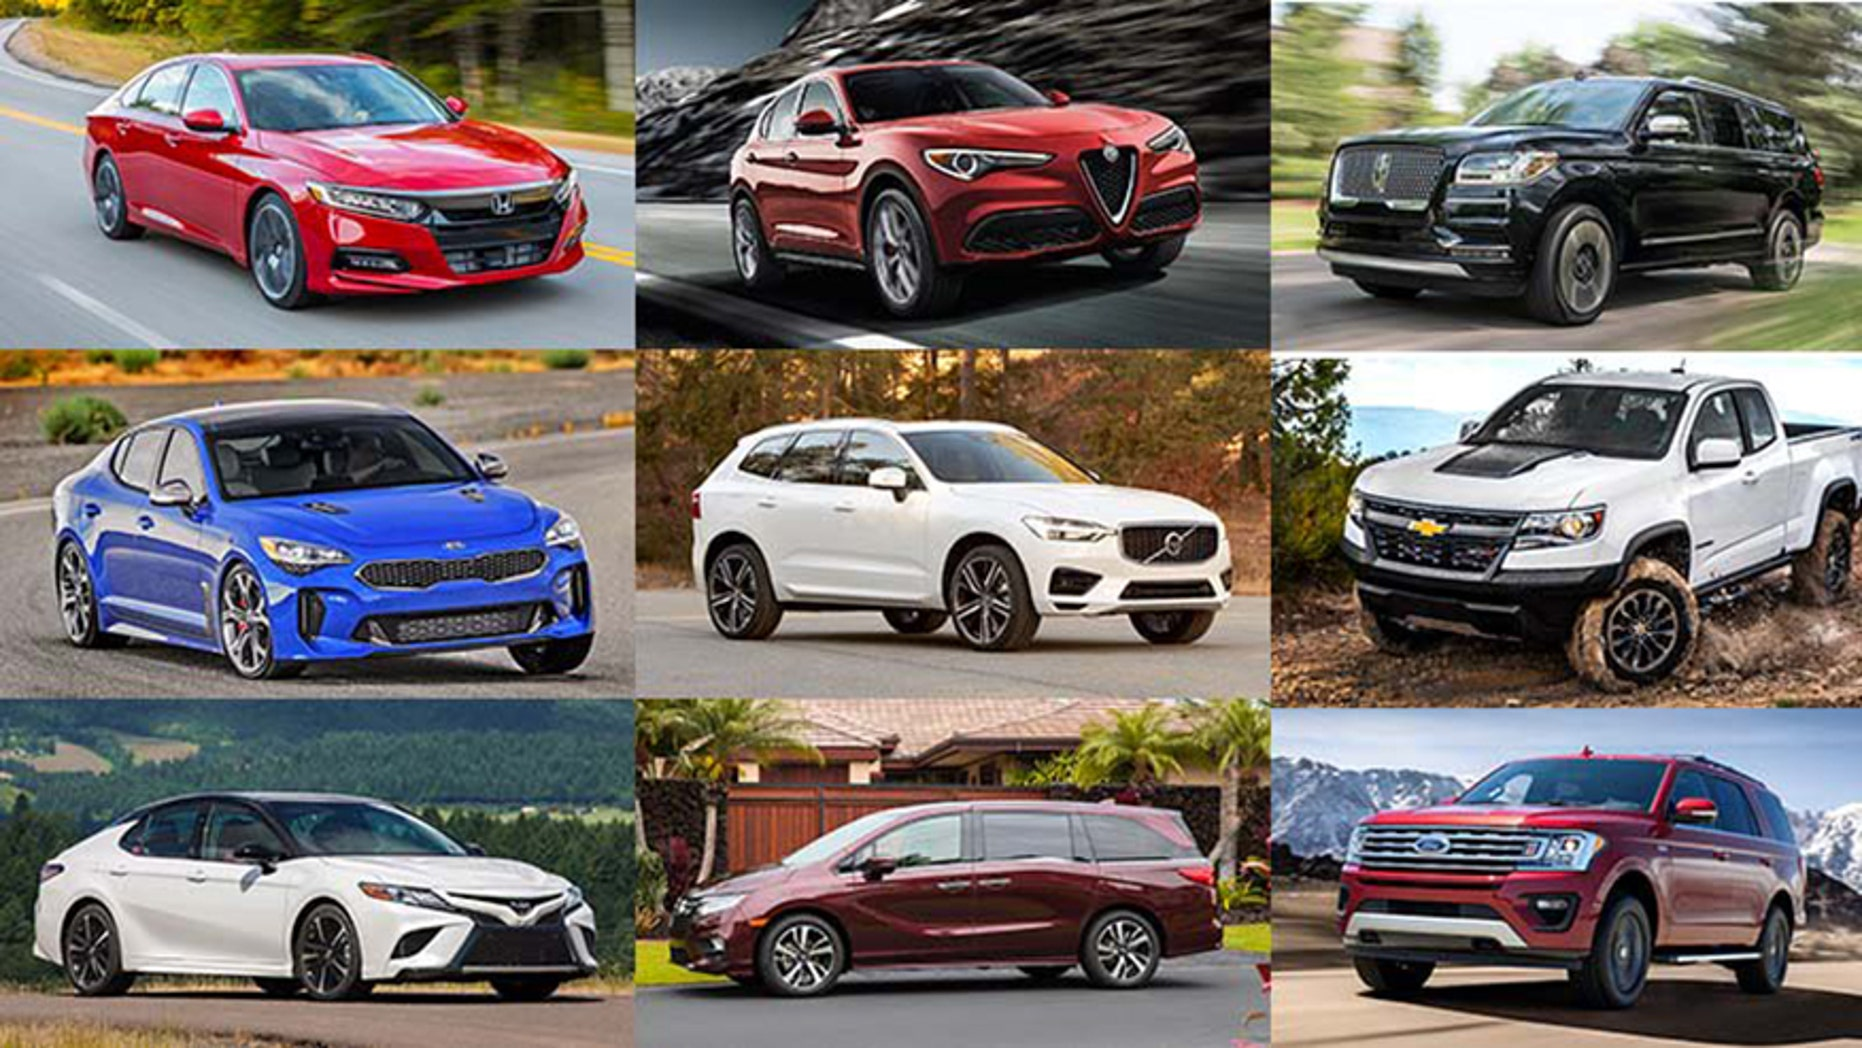 Top row (L to R): Honda Accord, Alfa Romeo Stelvio, Lincoln Navigator. Middle row: Kia Stinger, Volvo XC60, Chevrolet Colorado ZR2. Bottom row: Toyota Camry, Honda Odyssey, Ford Expedition